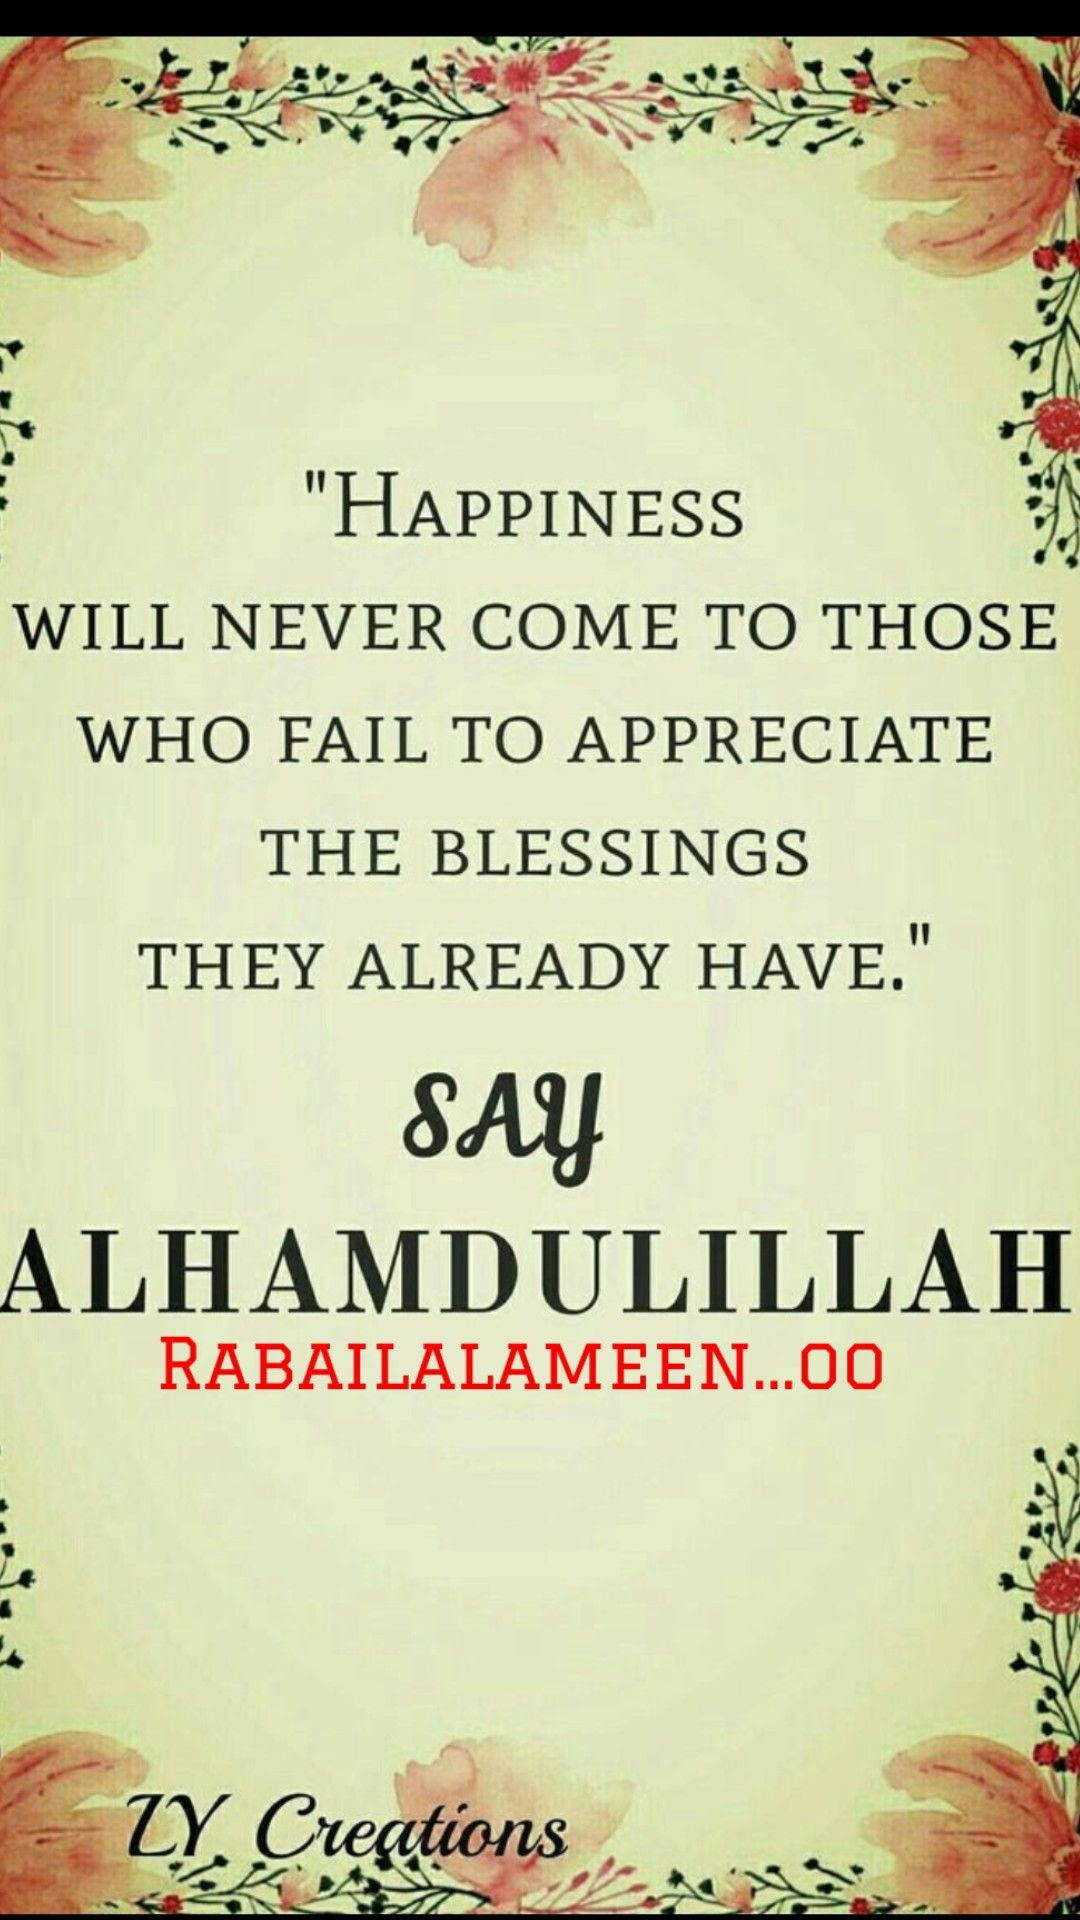 Positive Thinking Quotes From Quran: Pin By Yasmina Said On Inspirational Islamic Quotes